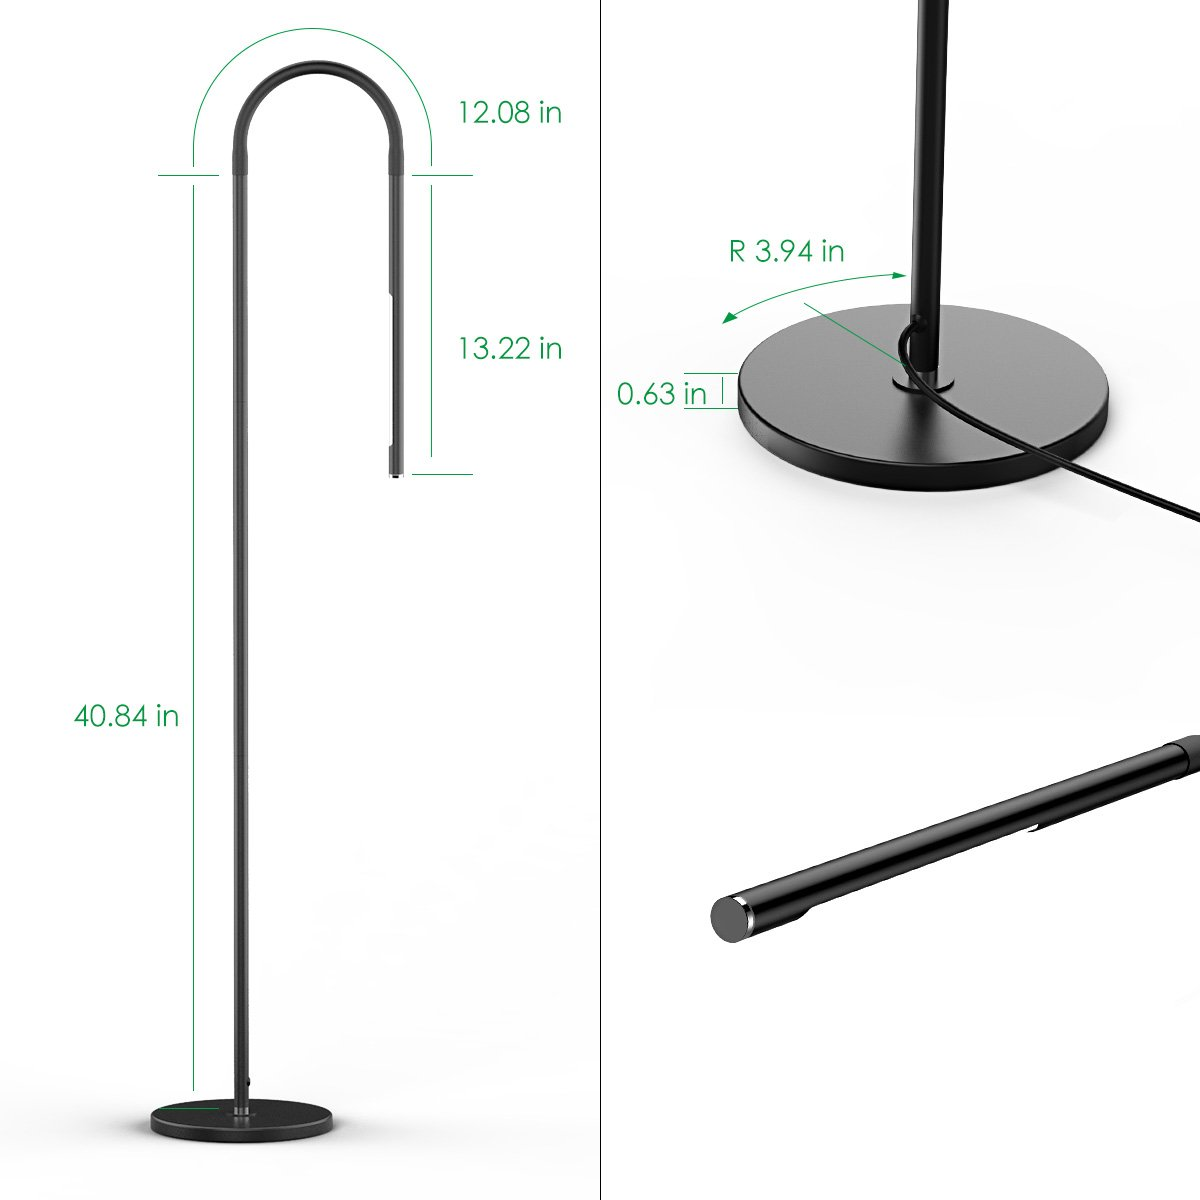 Joly Joy LED Modern Floor Lamps, Flexible Gooseneck Standing Reading Light W/Stable Base, 4 Color & 5 Brightness Dimmer, Touch & Remote Control, for Living Room, Chair, Couch, Office Task (Black) by Joly Joy (Image #9)